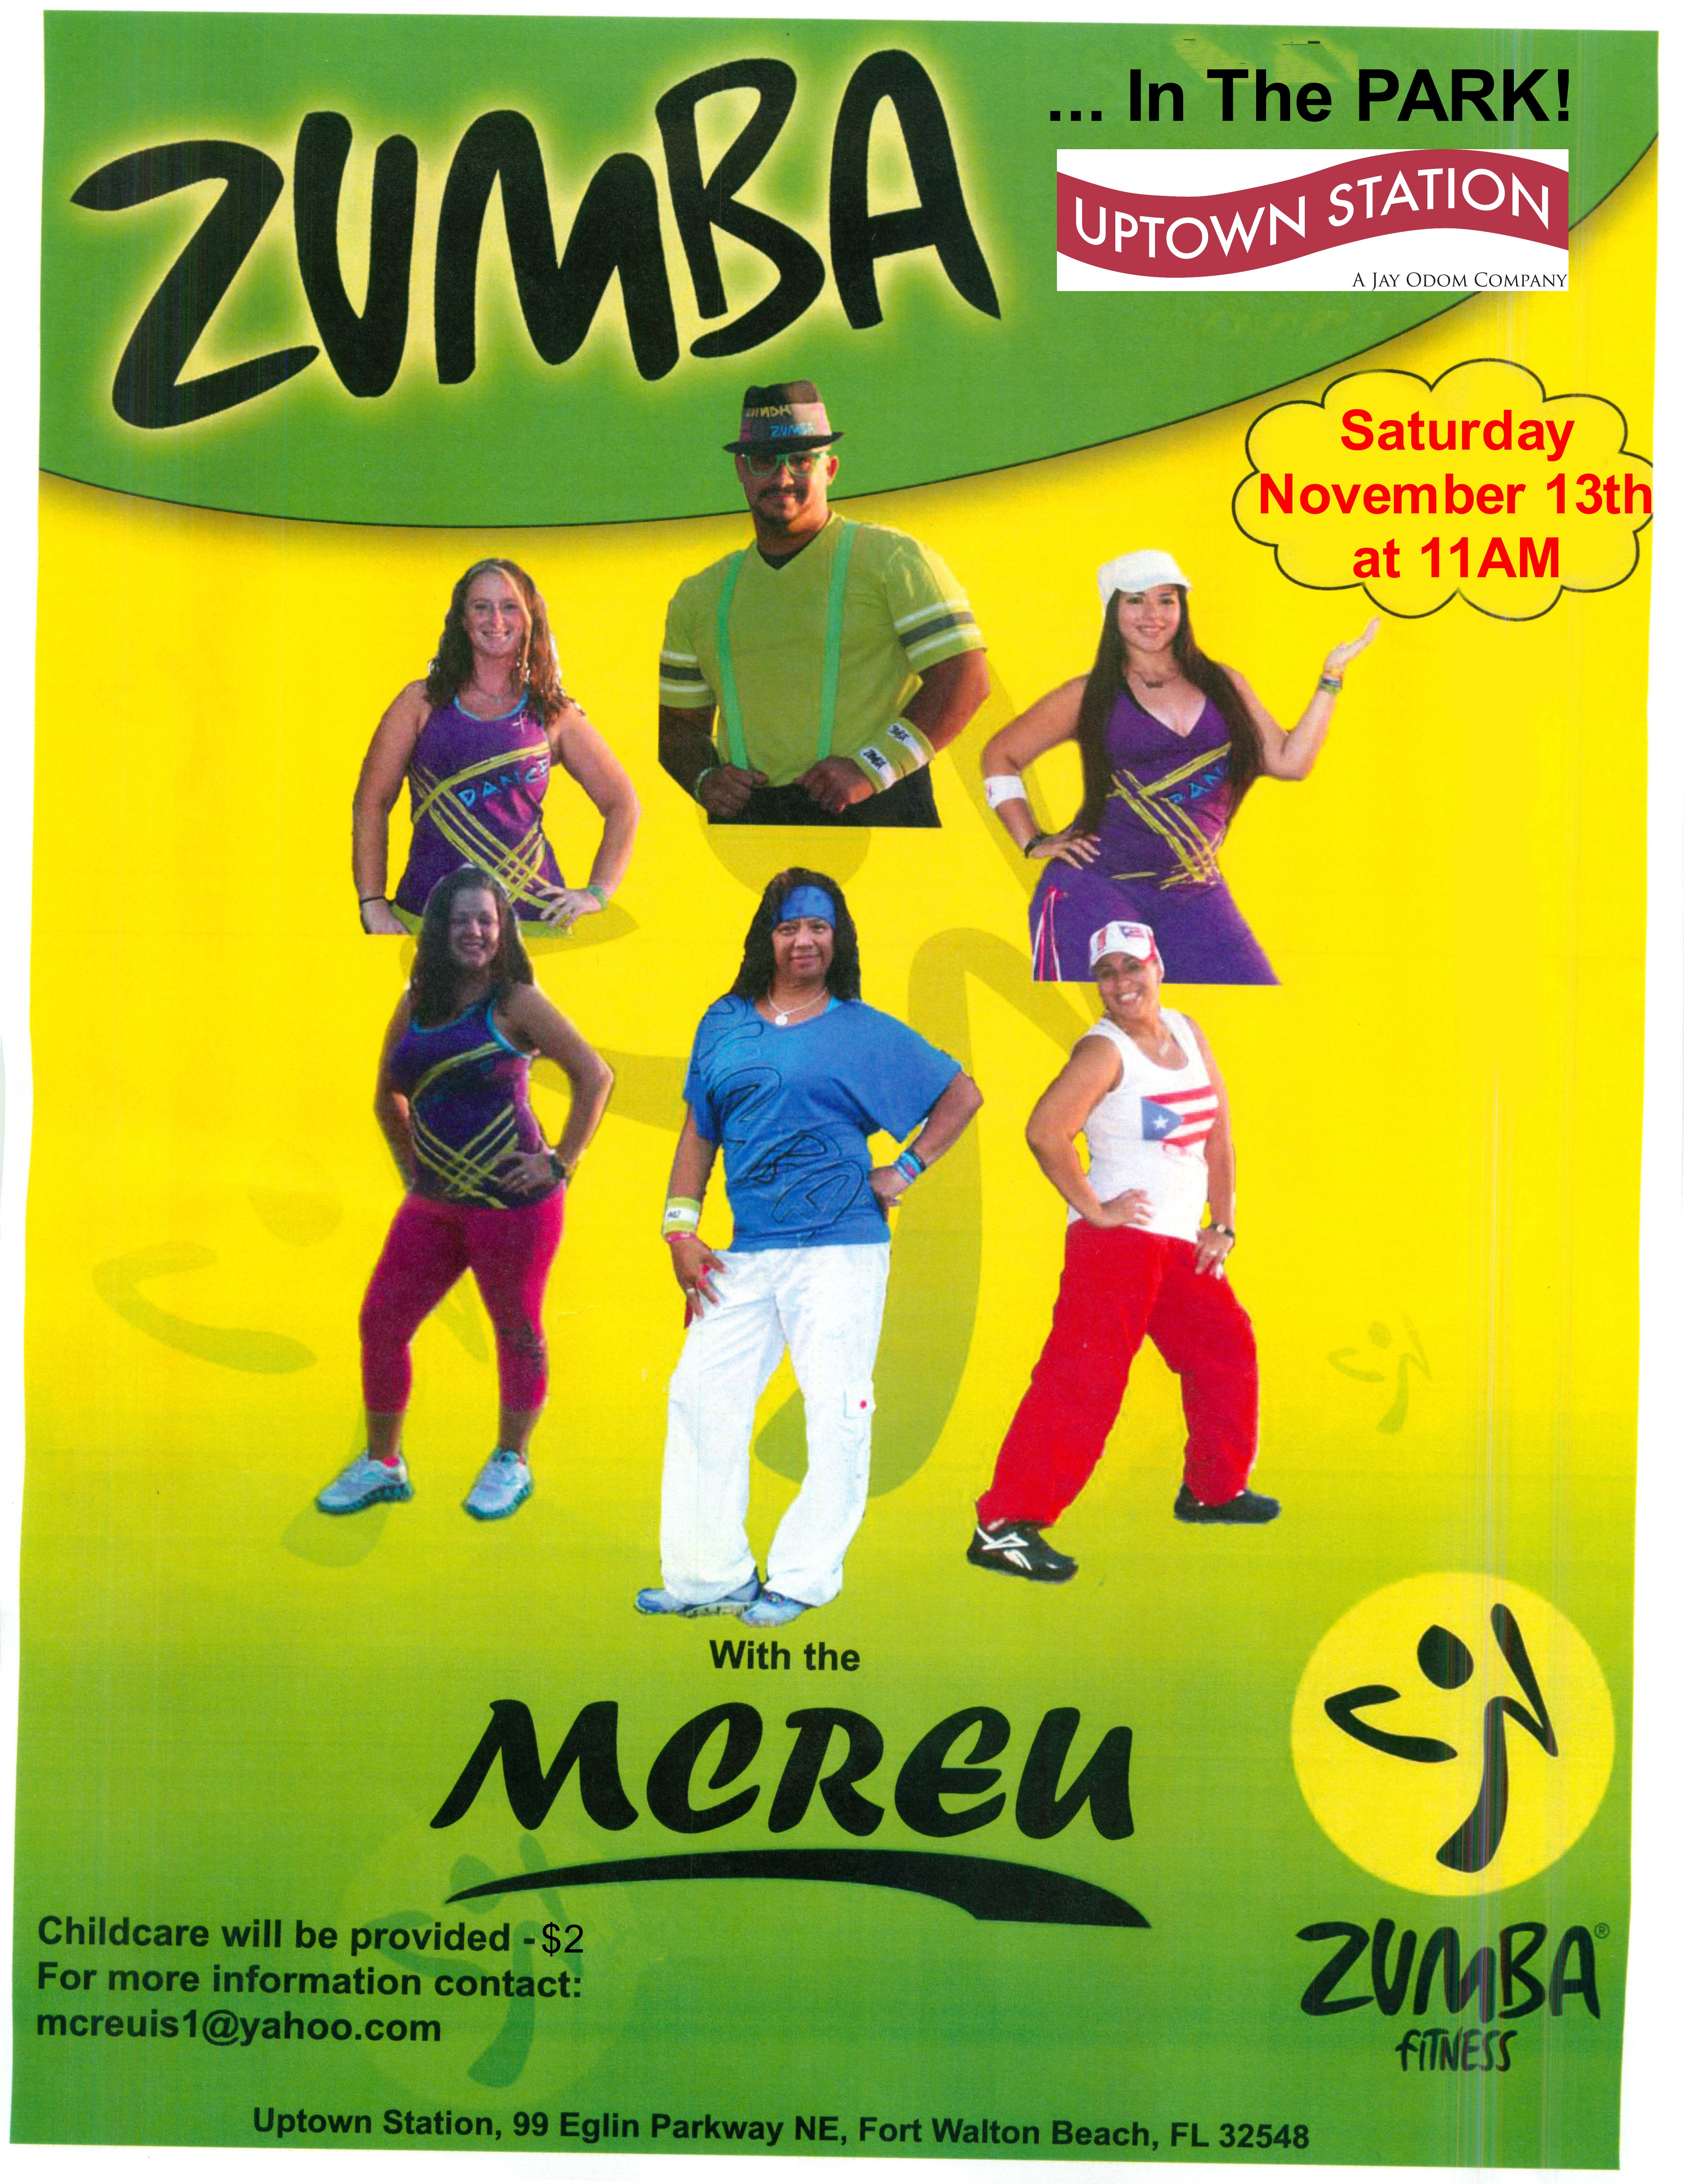 zumba flyers samples brochure software design business flyers try it